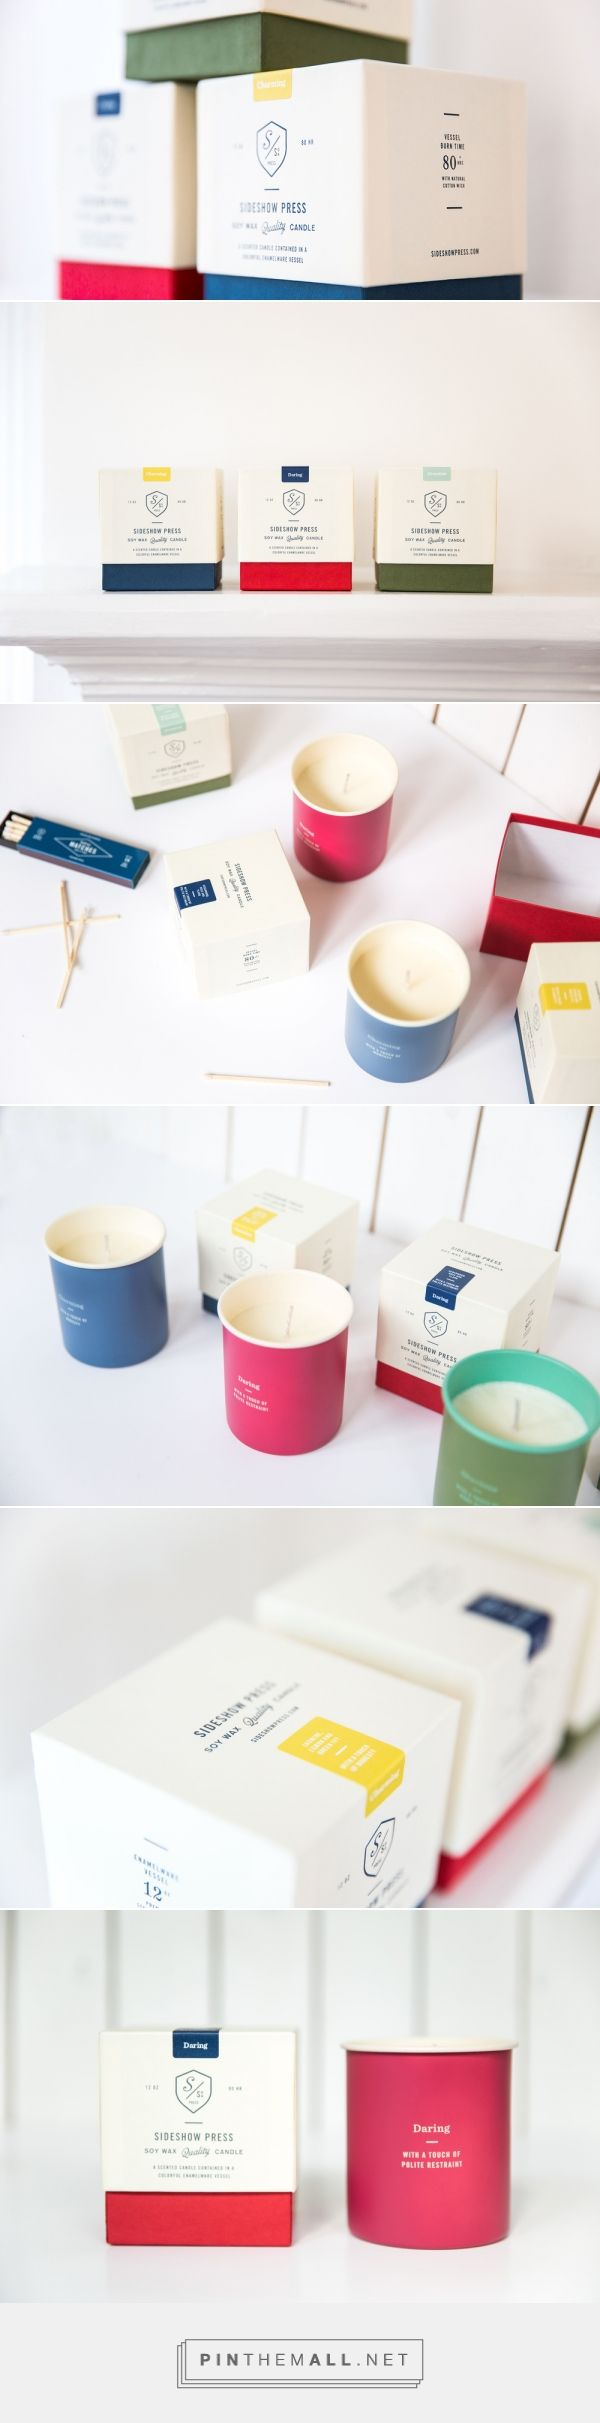 Sideshow Press Candle — The Dieline - Branding & Packaging - created via https://pinthemall.net